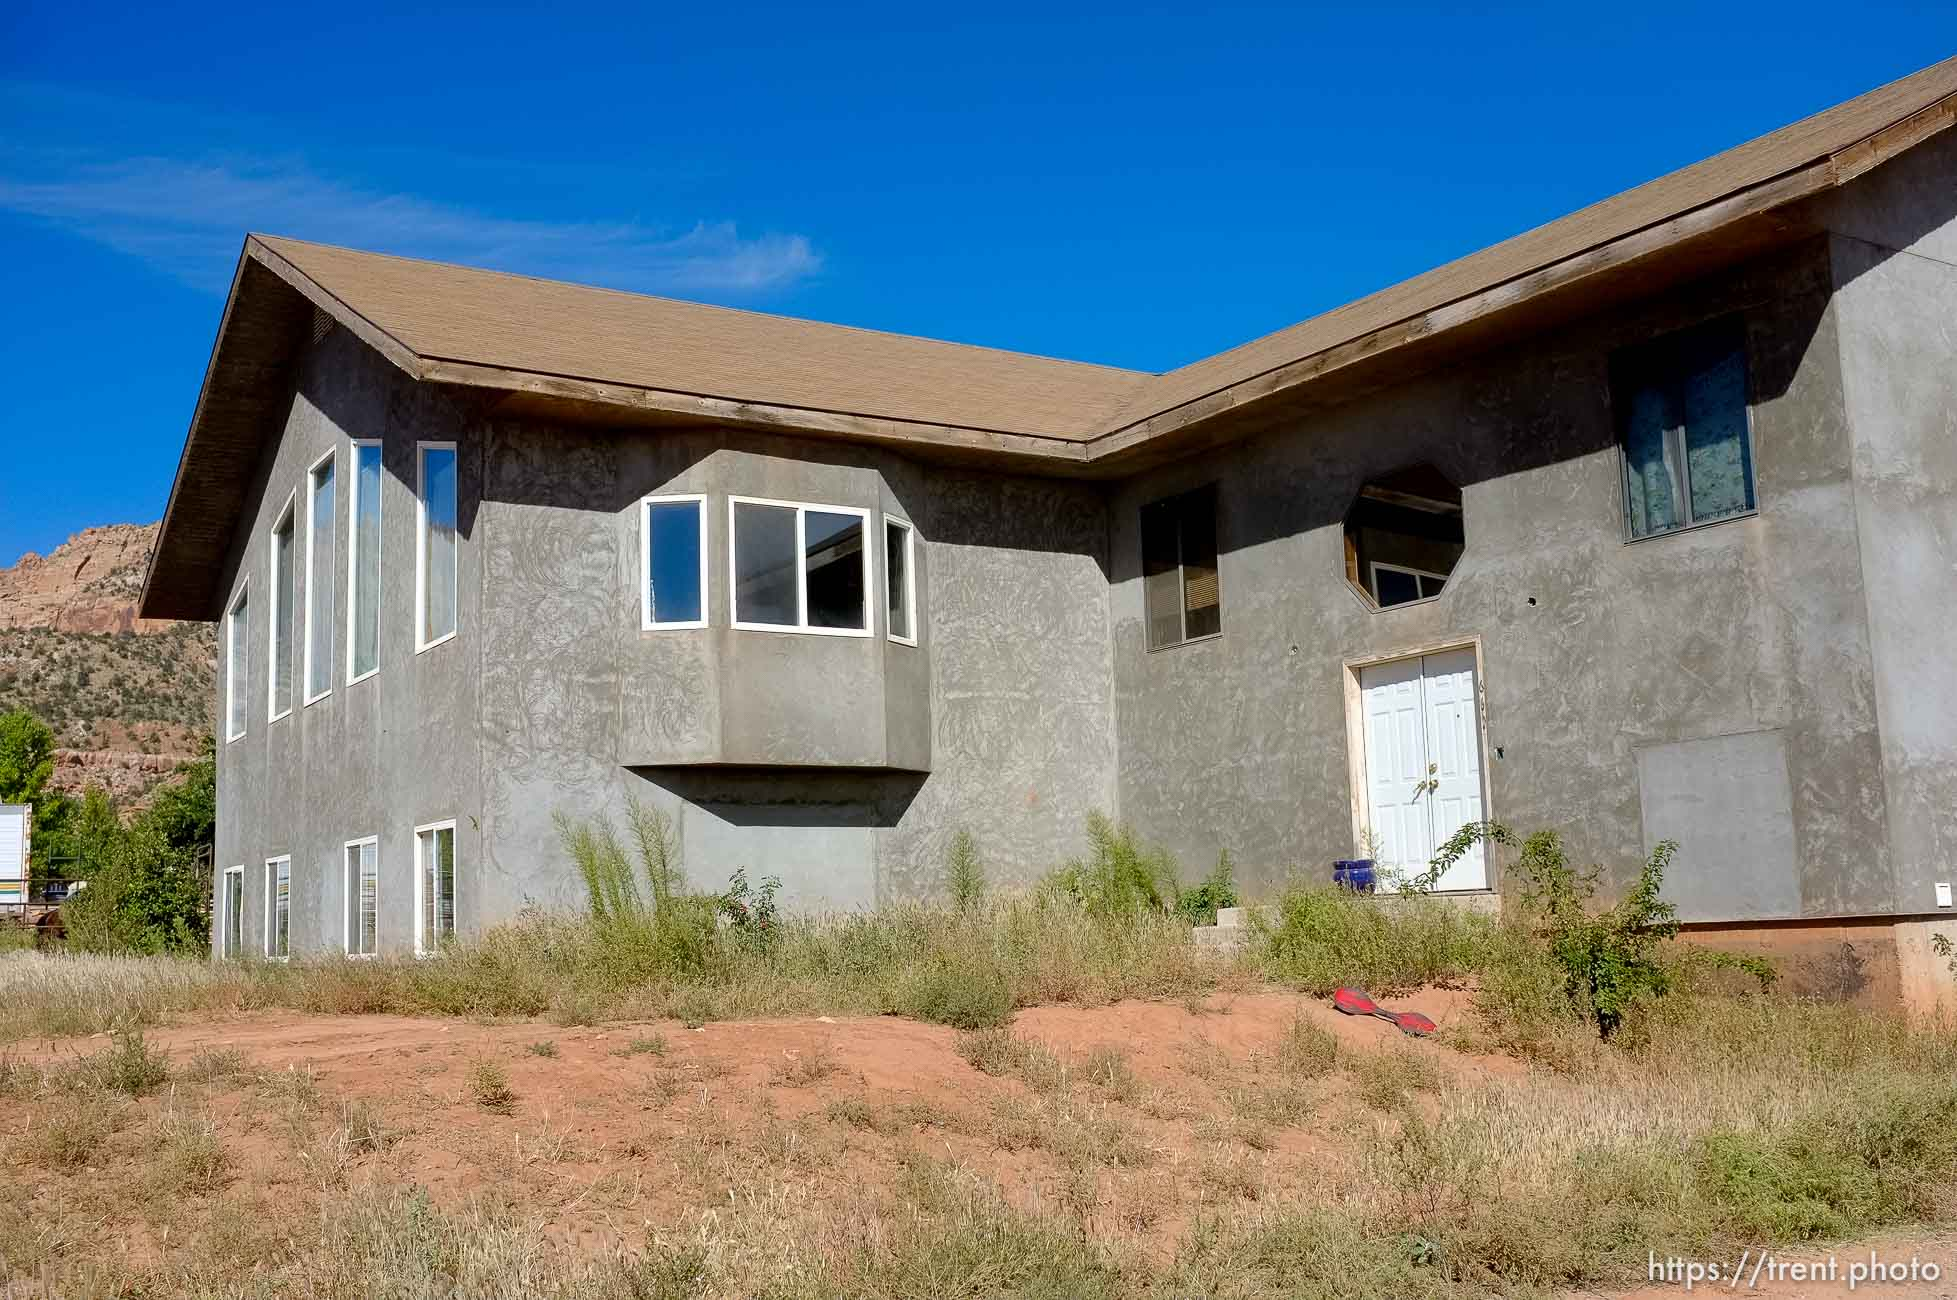 Andrew Chatwin home, Hildale, Tuesday October 8, 2013.